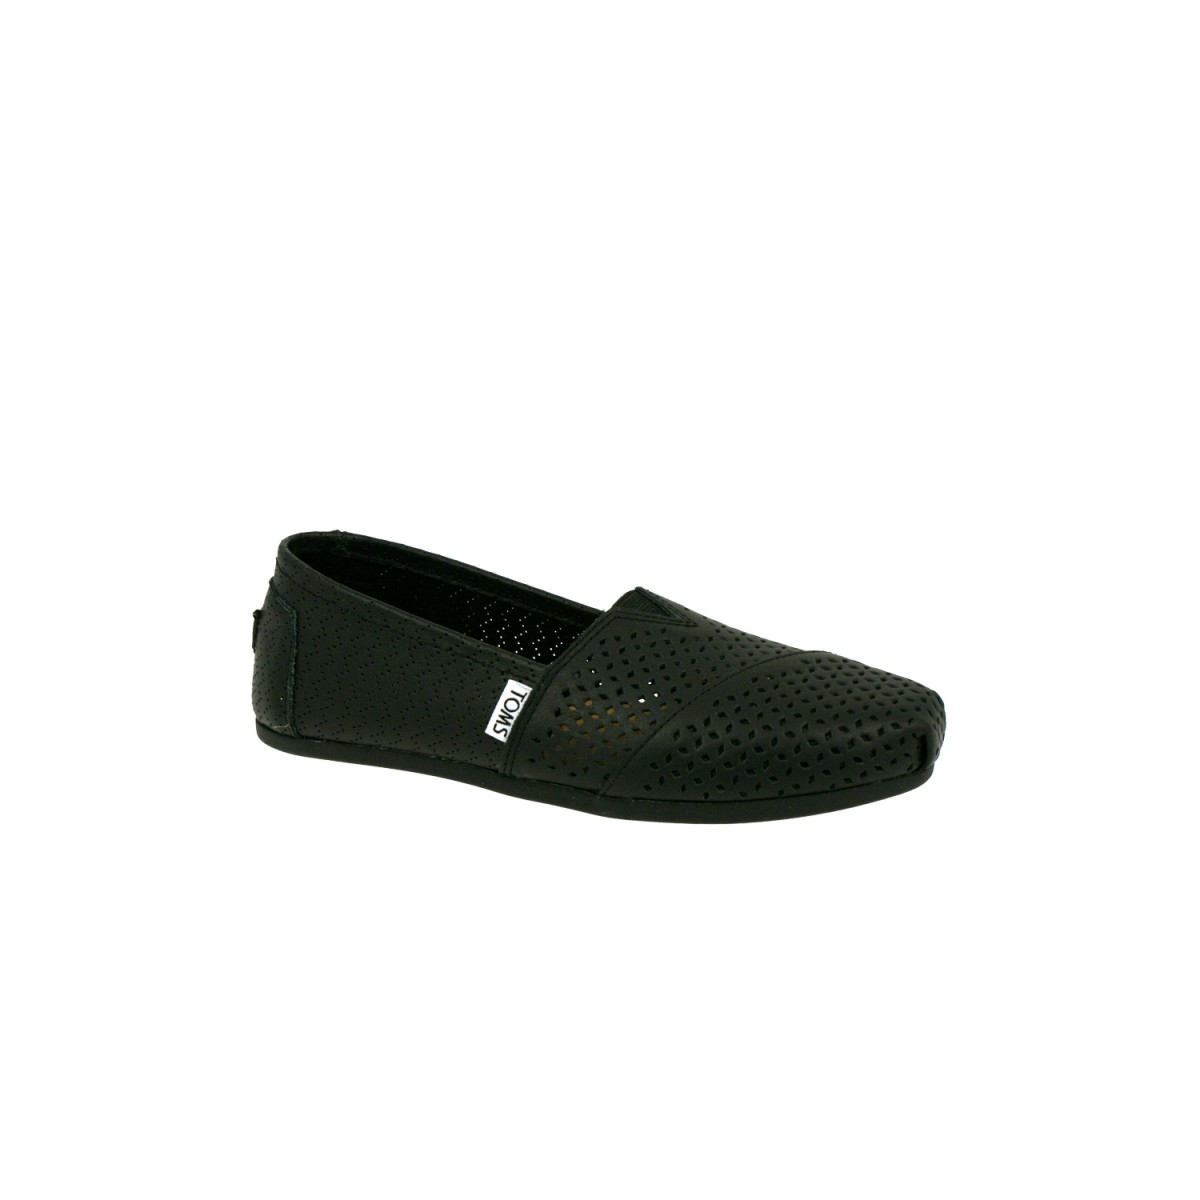 TOMS Classic Perforated Leather Black-31